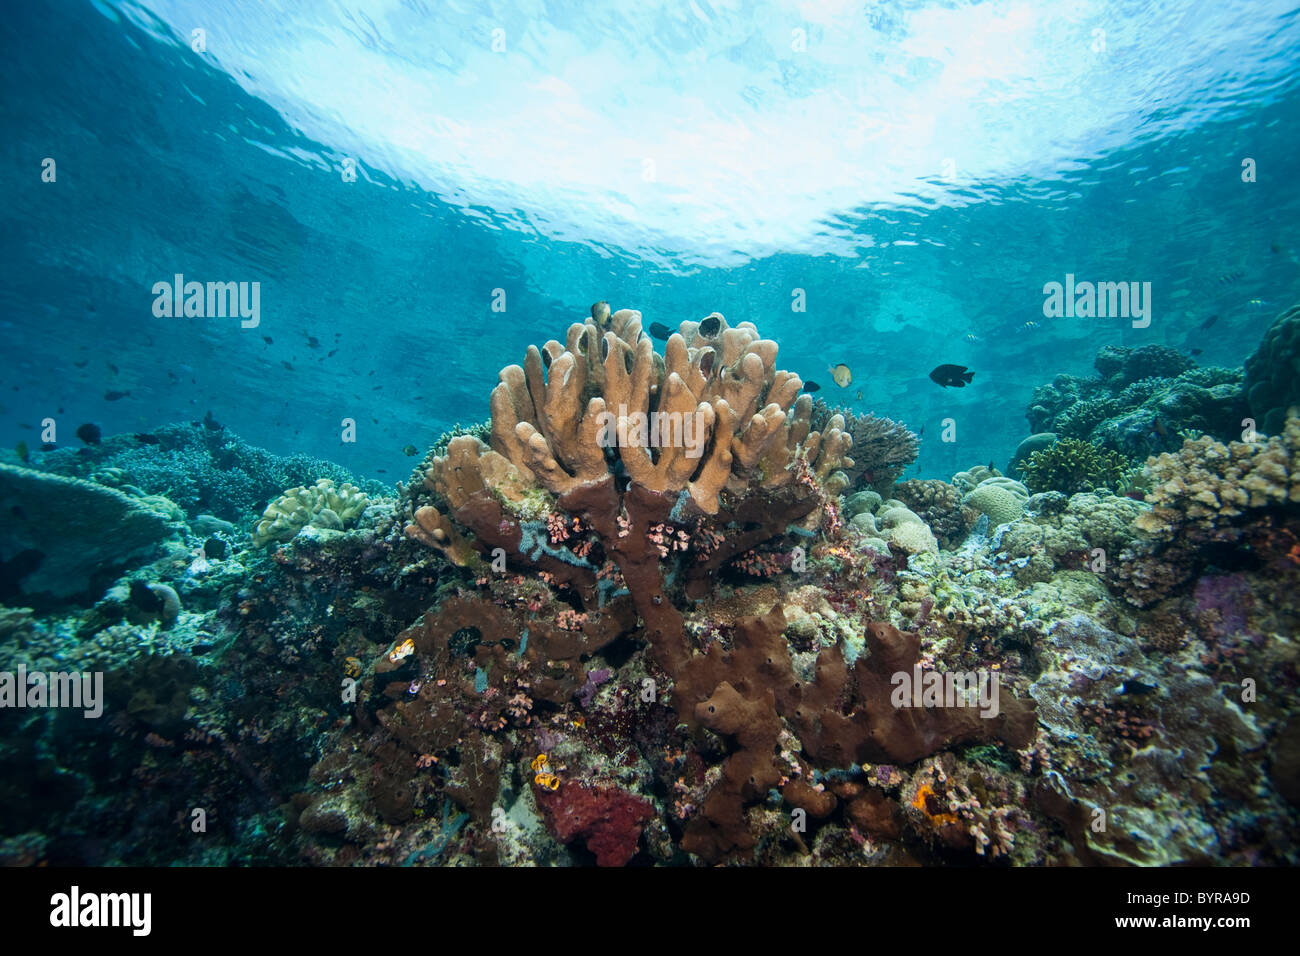 A tropical coral reef off Bunaken Island in North Sulawesi, Indonesia. - Stock Image